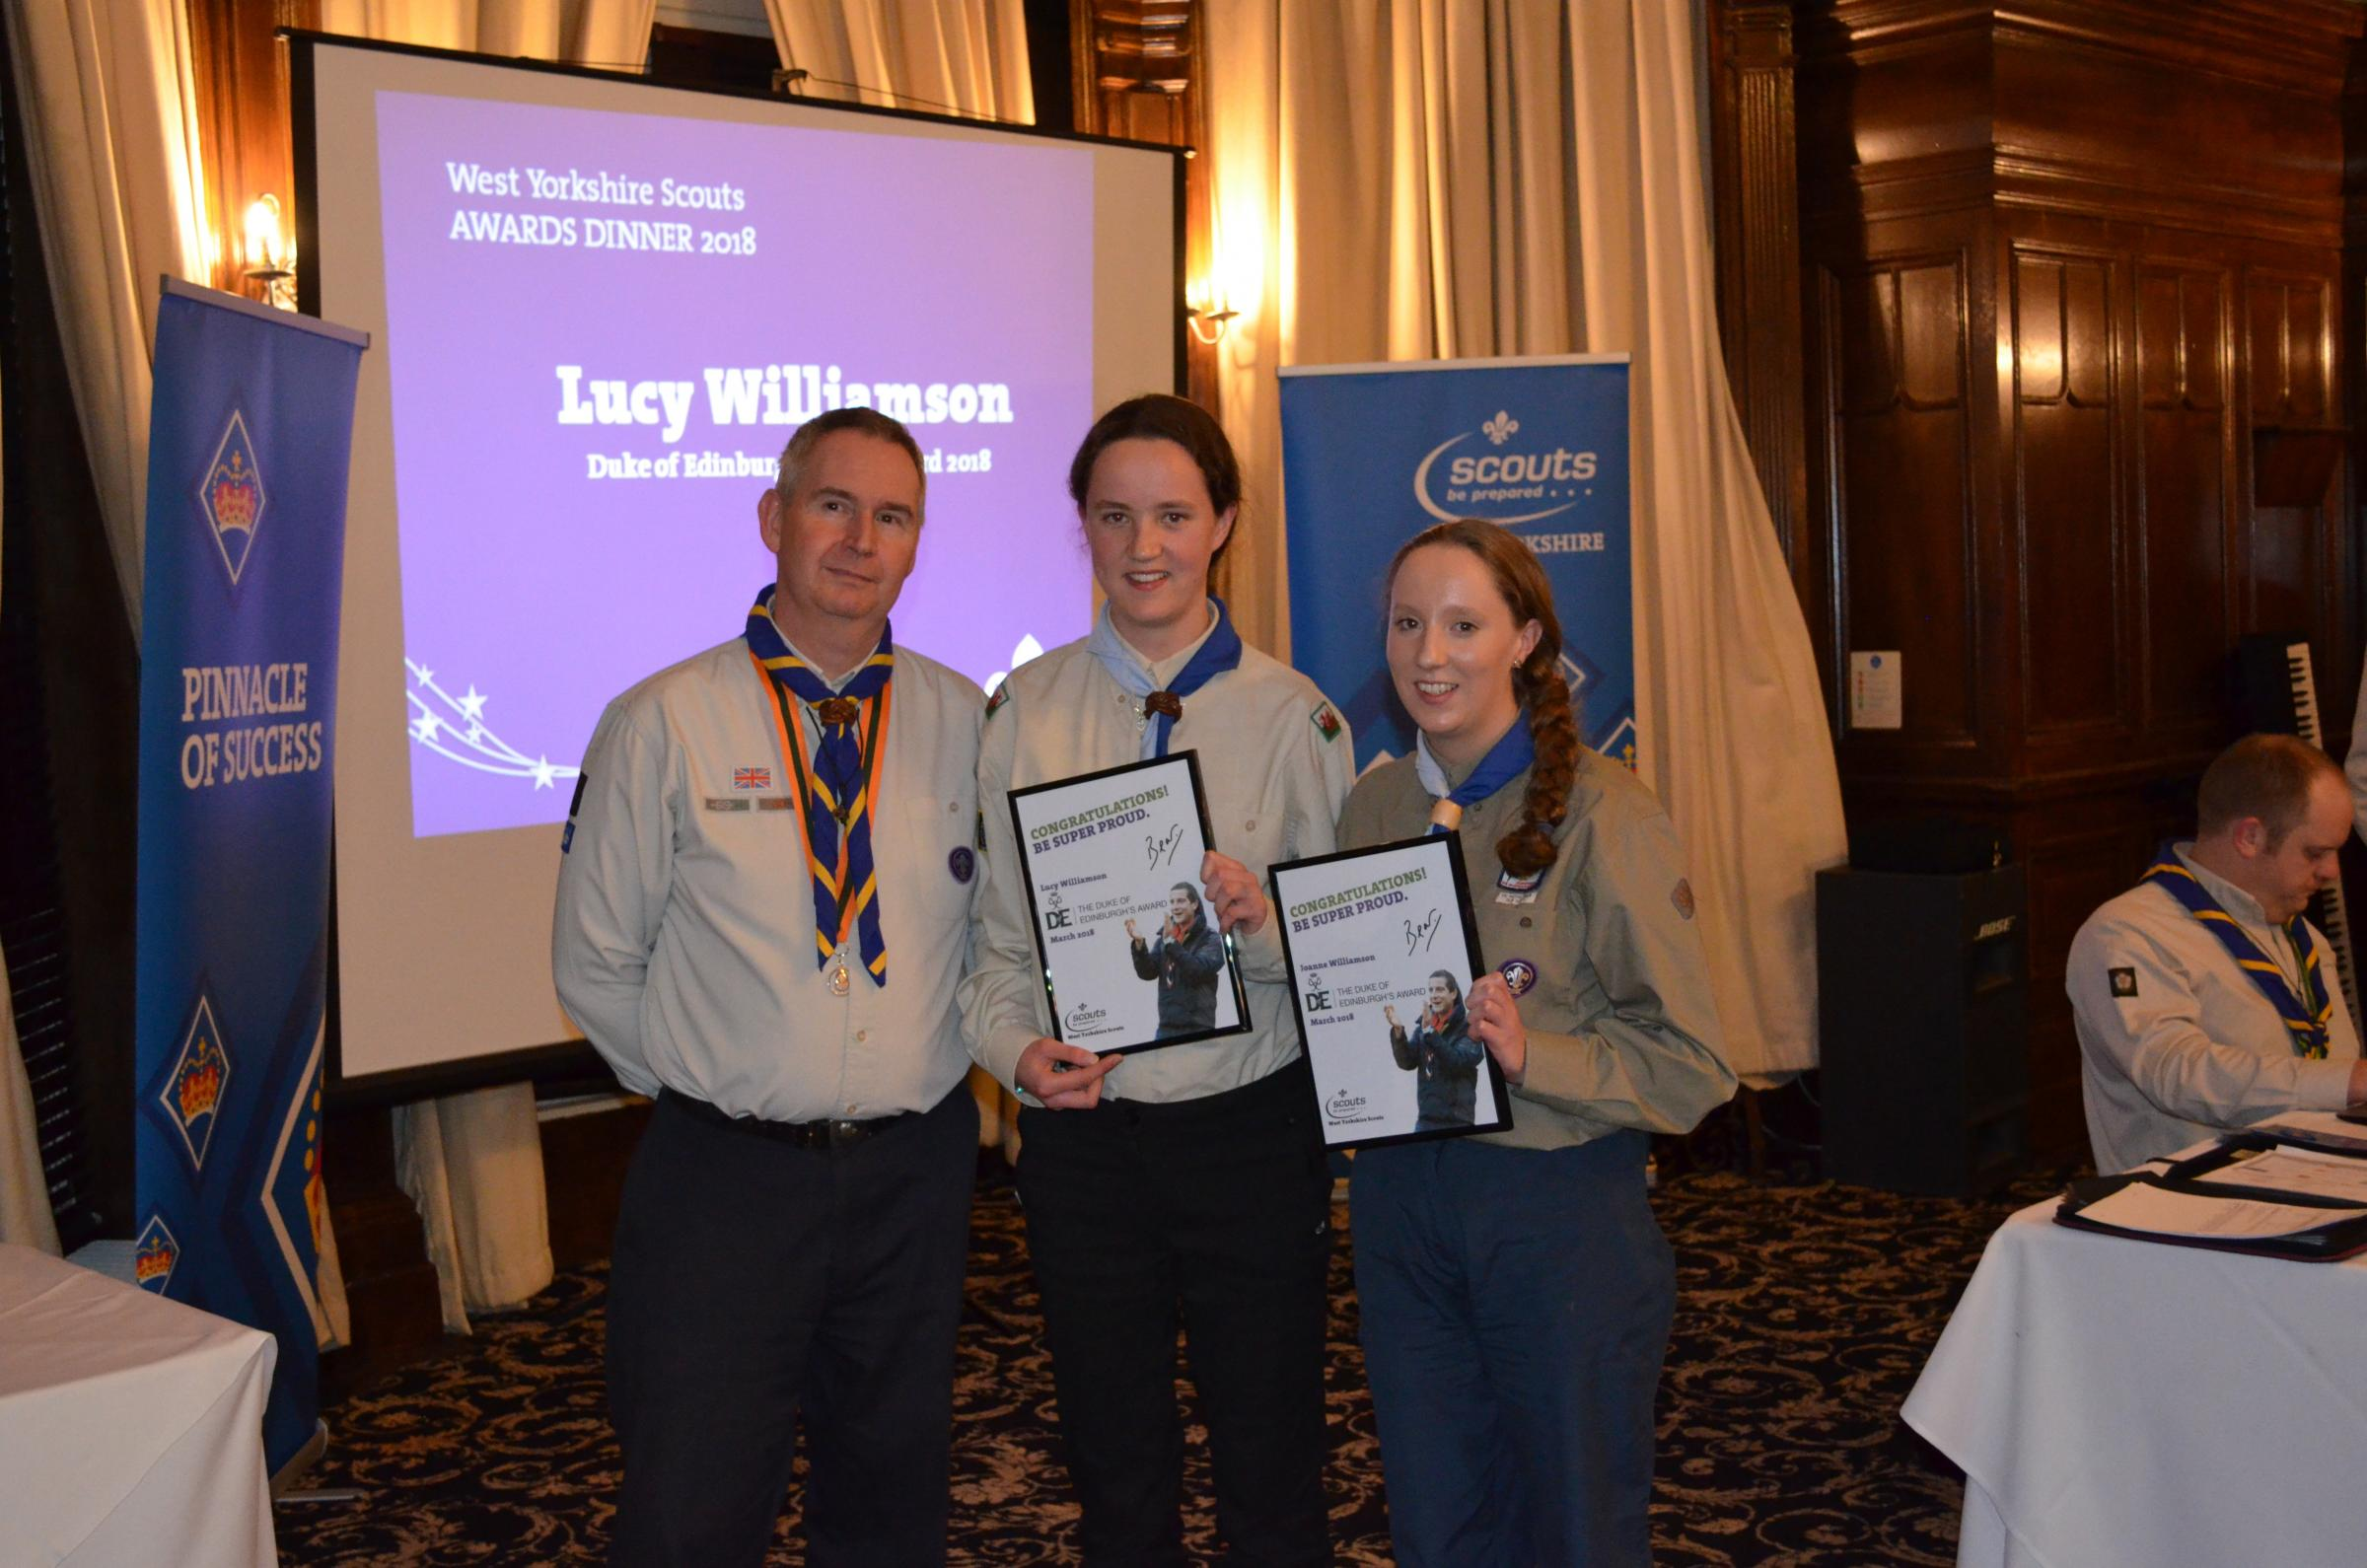 Mark Stageman, the Scout County Commissioner of West Yorkshire make the presentation to Joanne and Lucy Williamson